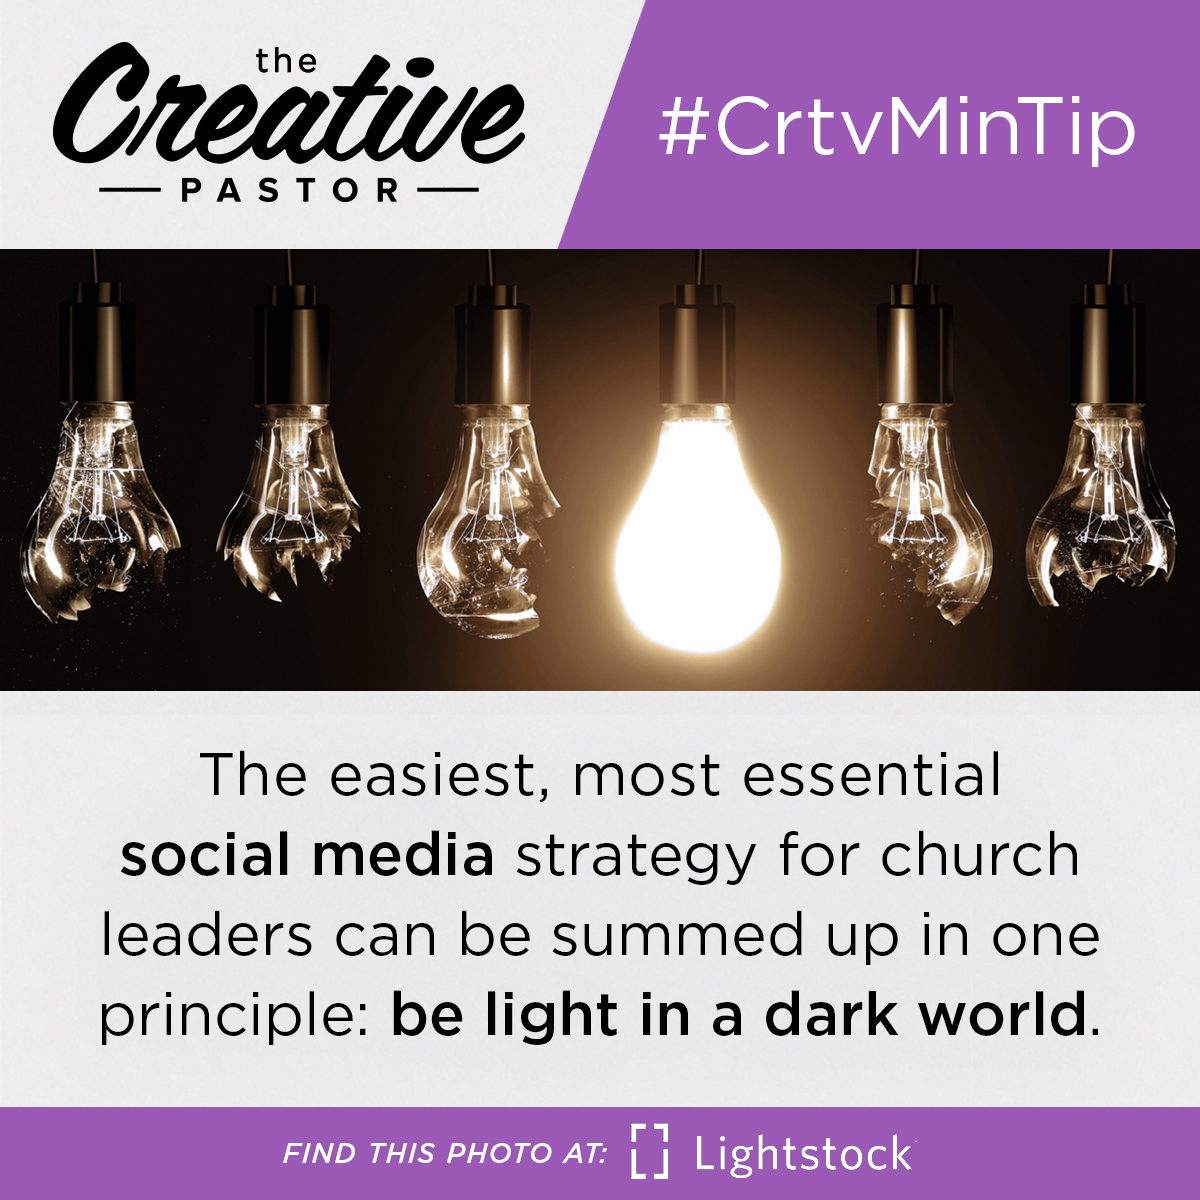 #CrtvMinTIp: The easiest, most essential social media strategy for church leaders can be summed up in one principle: be light in a dark world.